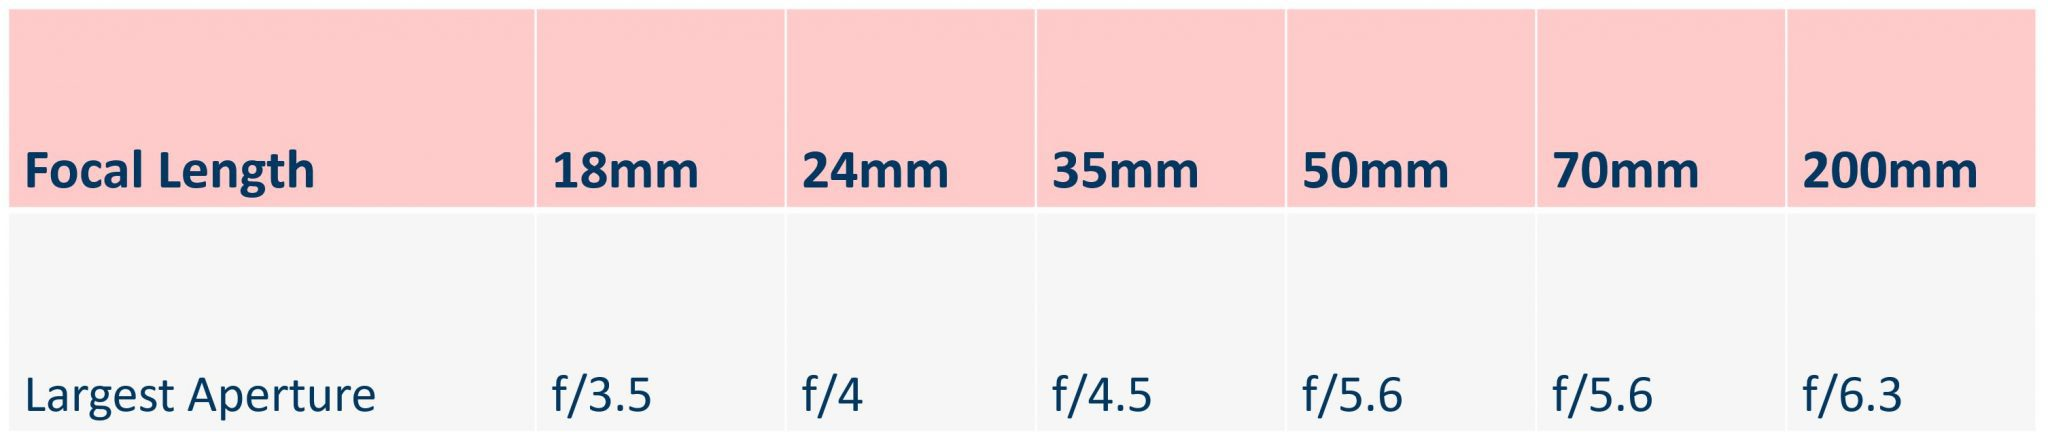 focal length table of lens